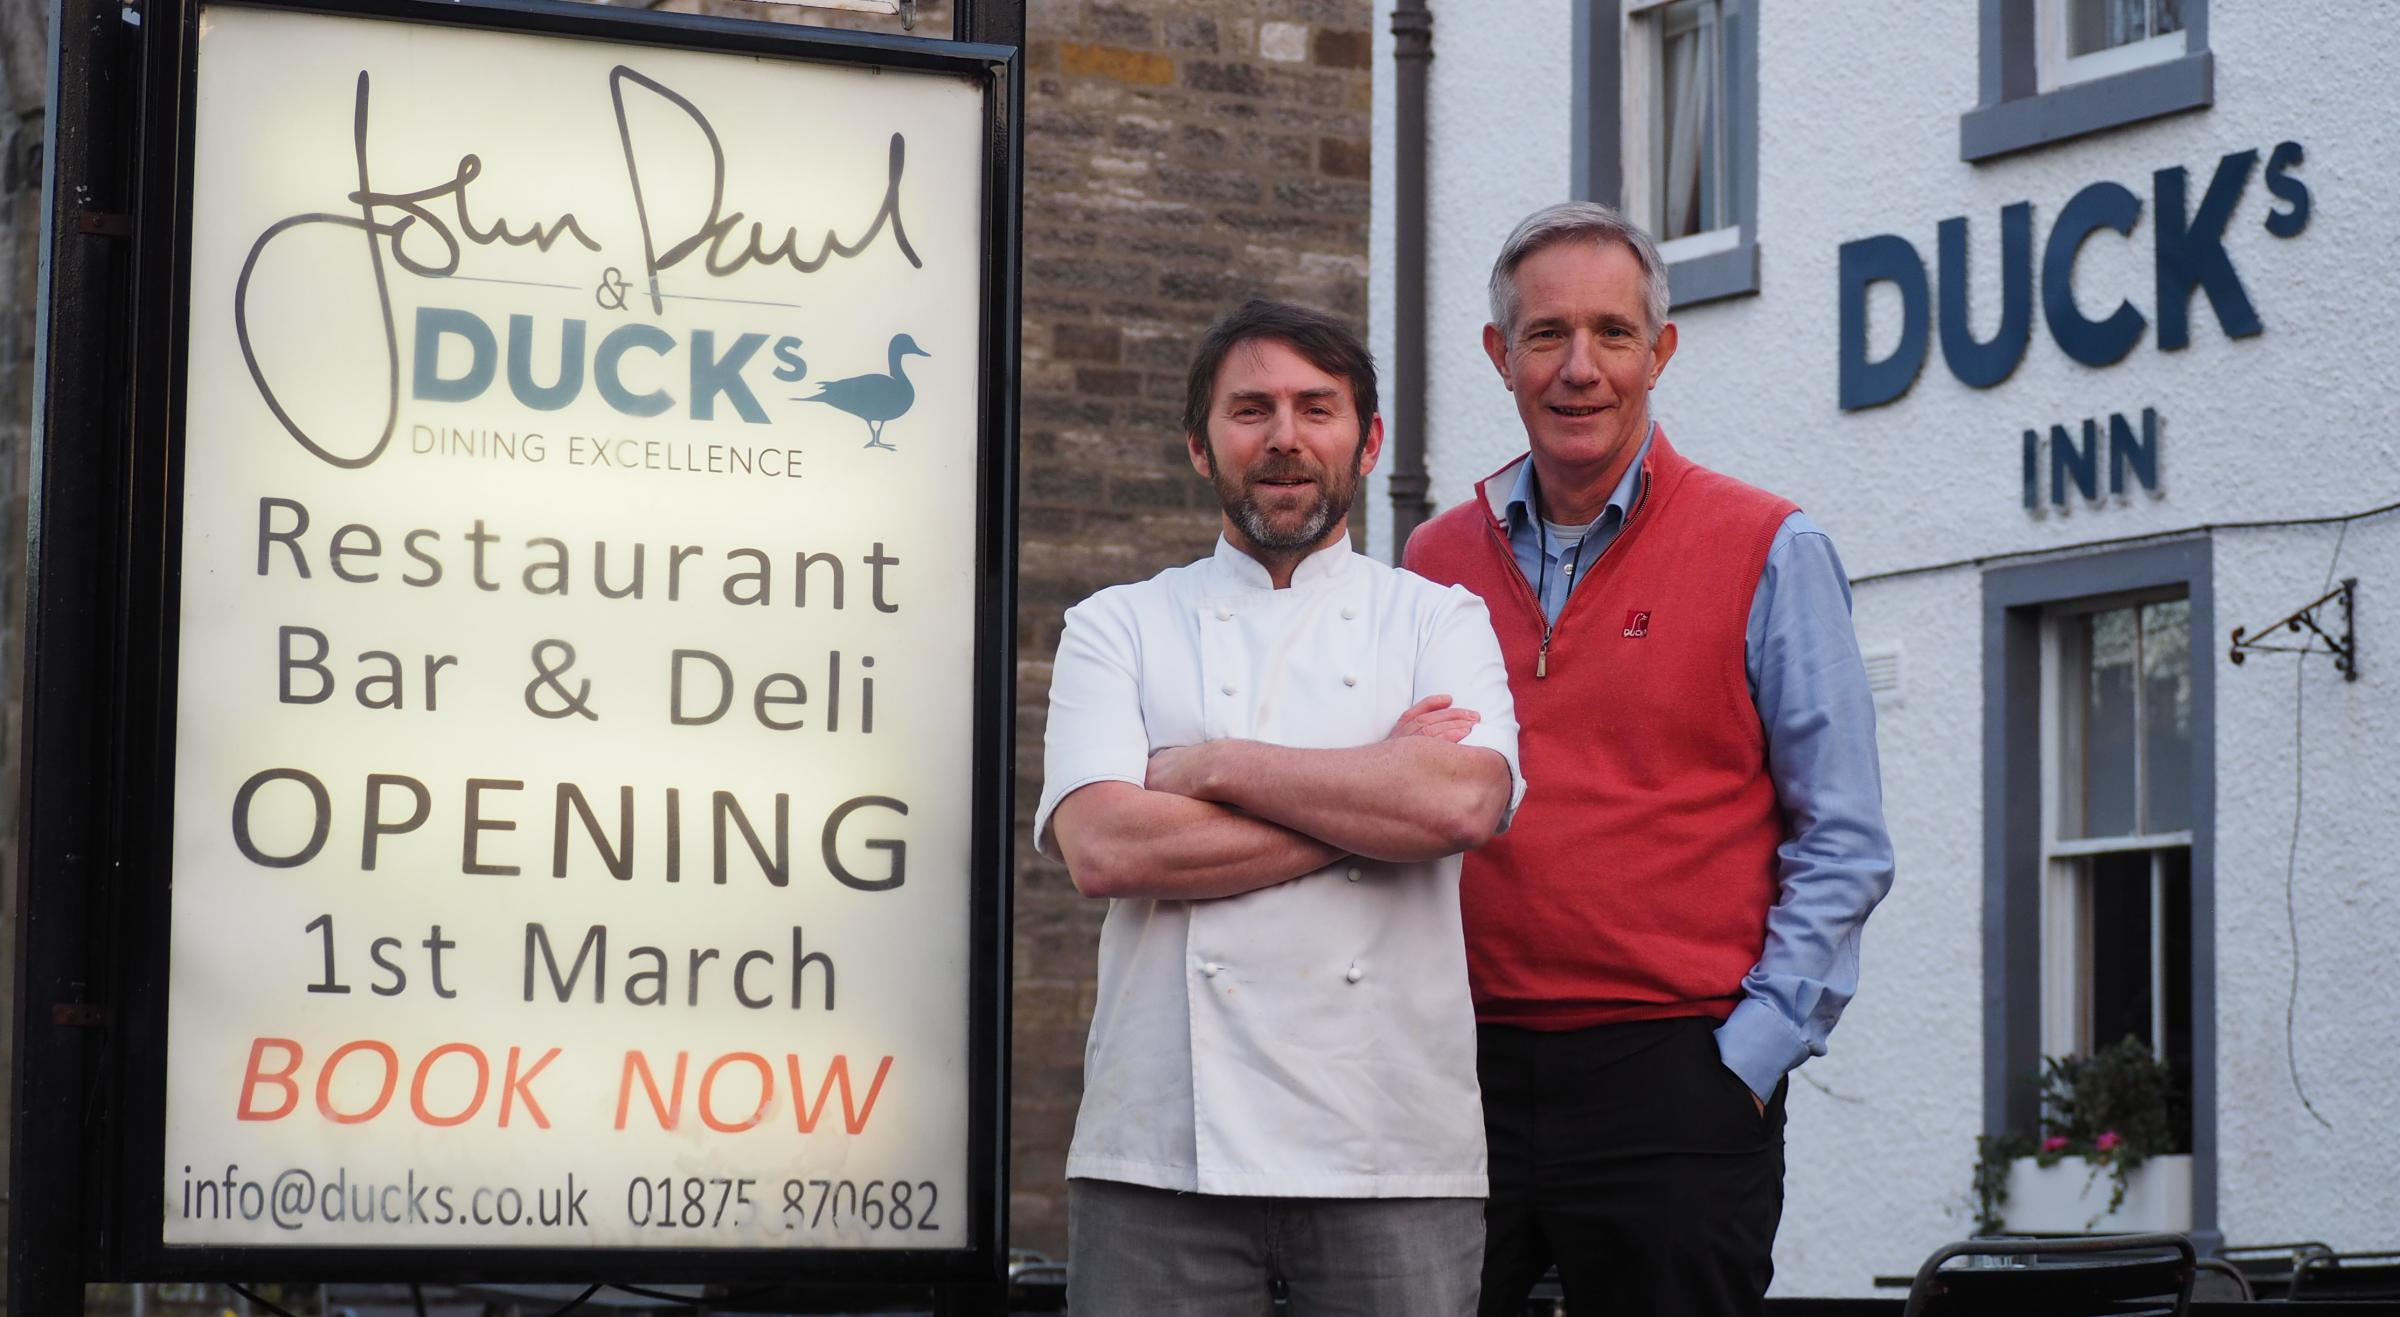 JP McLaughlin with Malcolm Duck (right) outside the premises in Aberlady. They open this week